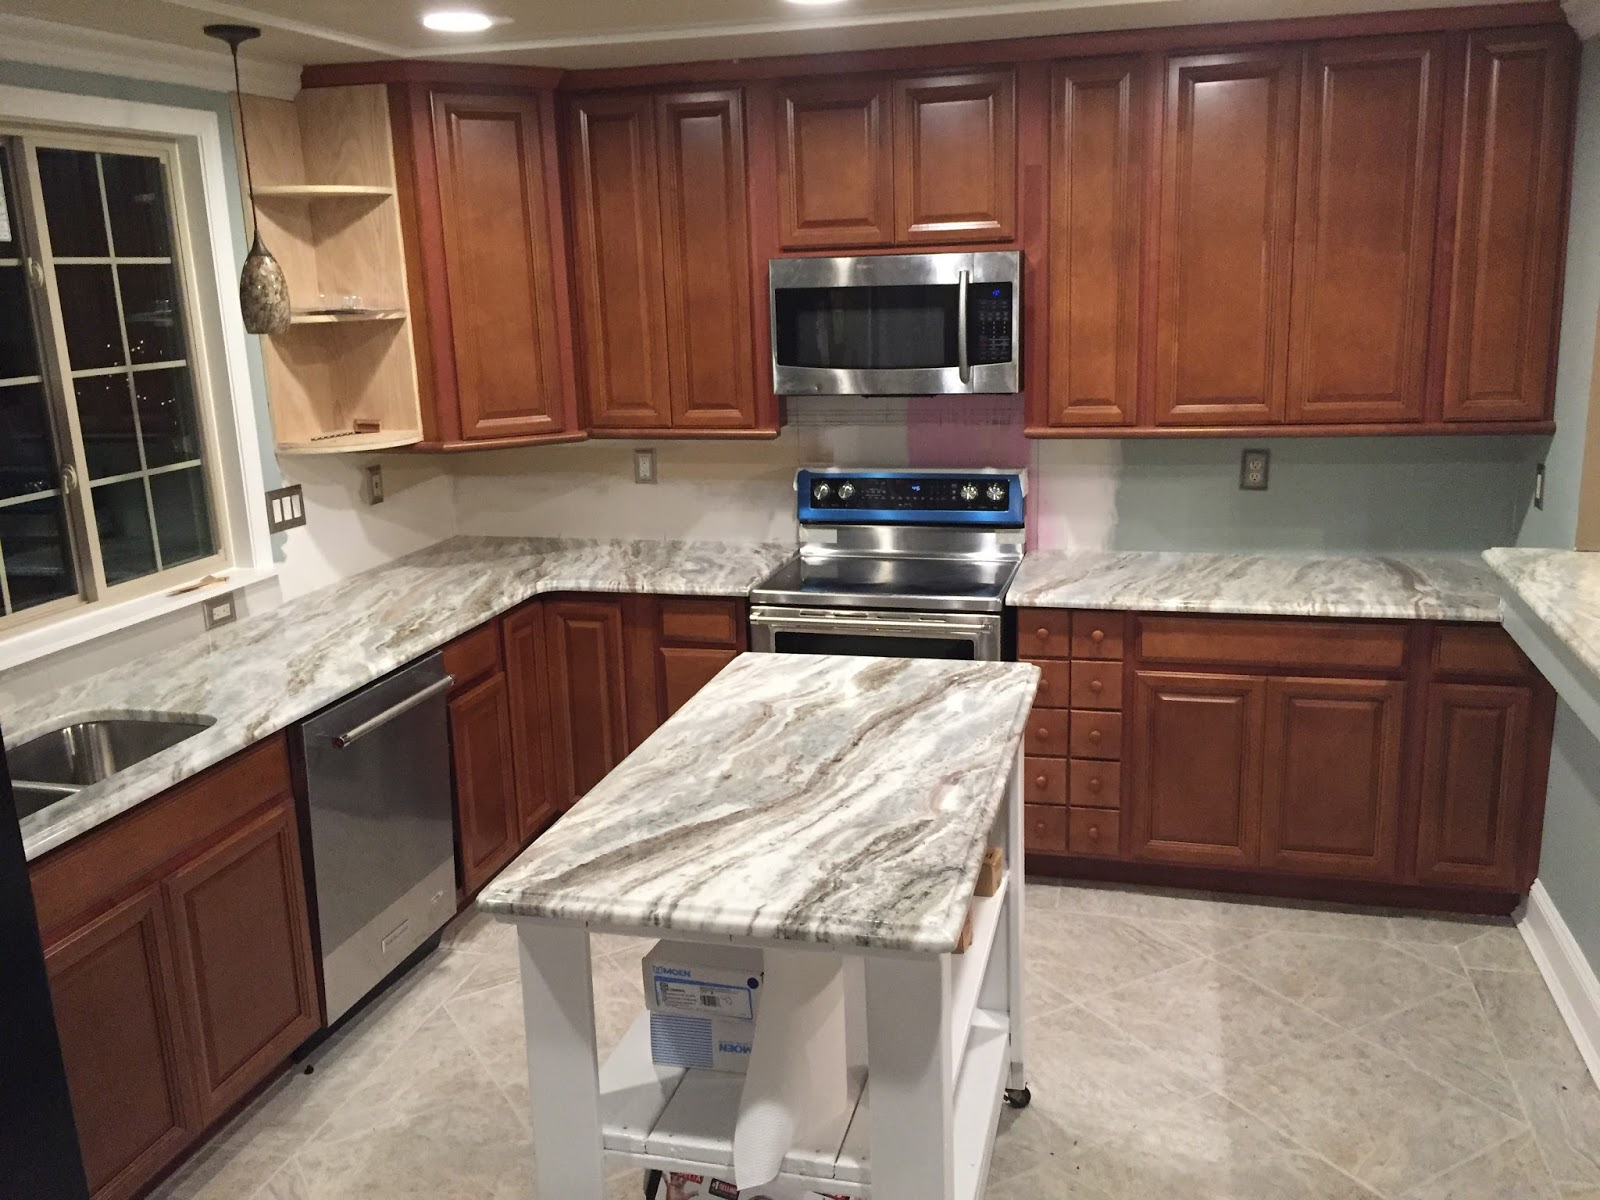 granite pairing elegance home charlotte nc with cabinets for countertops gallery rustic fresh countertop kitchen beautiful simple design of